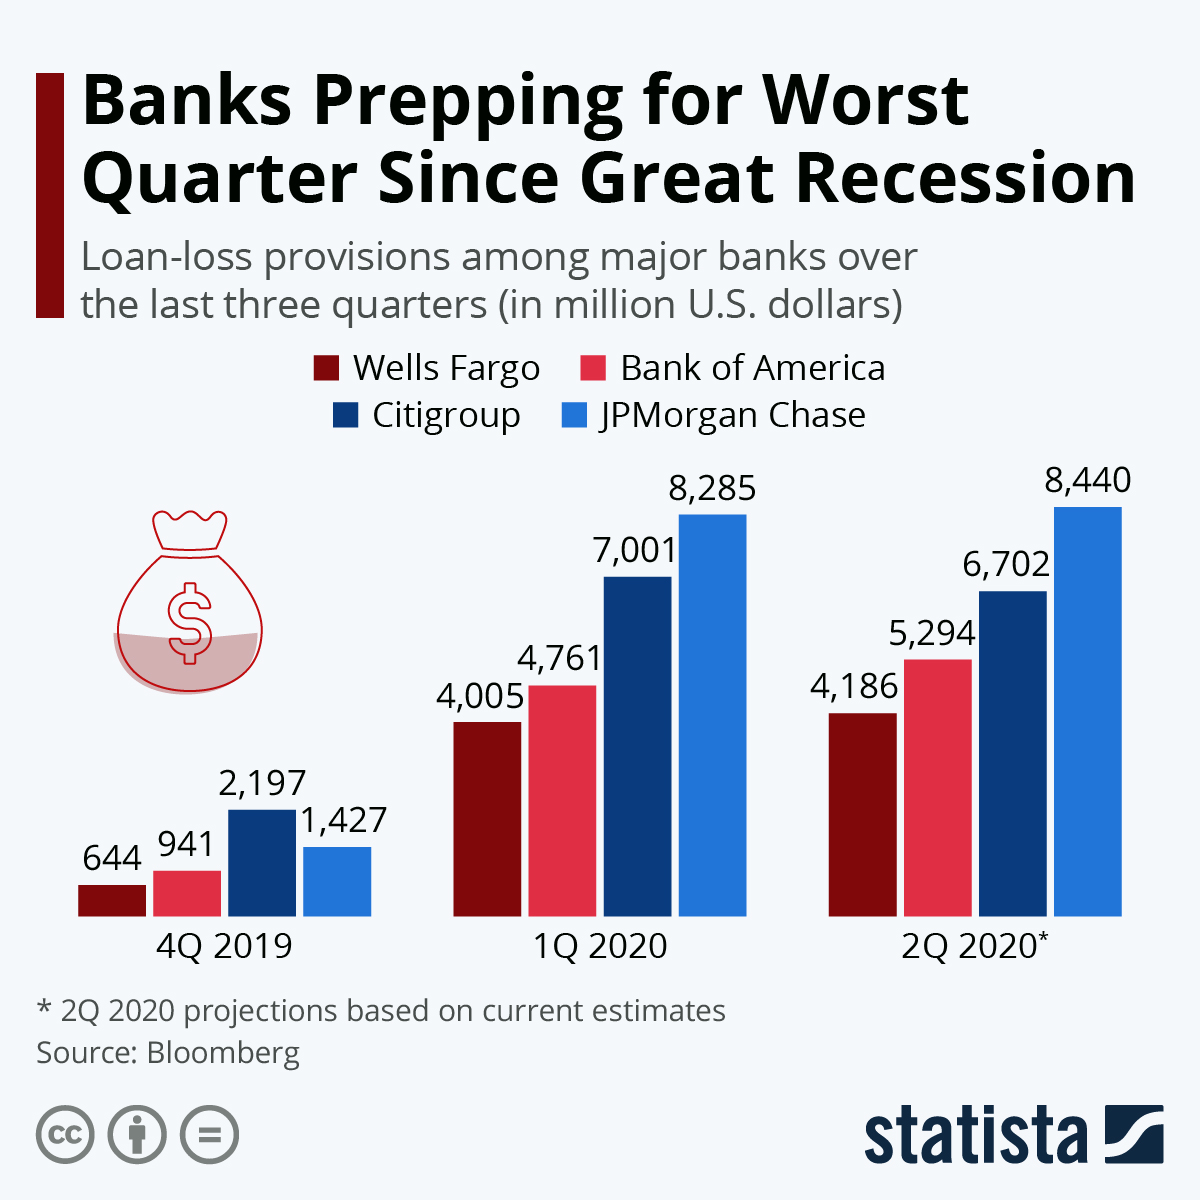 Banks Prepping for Worst Quarter Since Great Recession #infographic